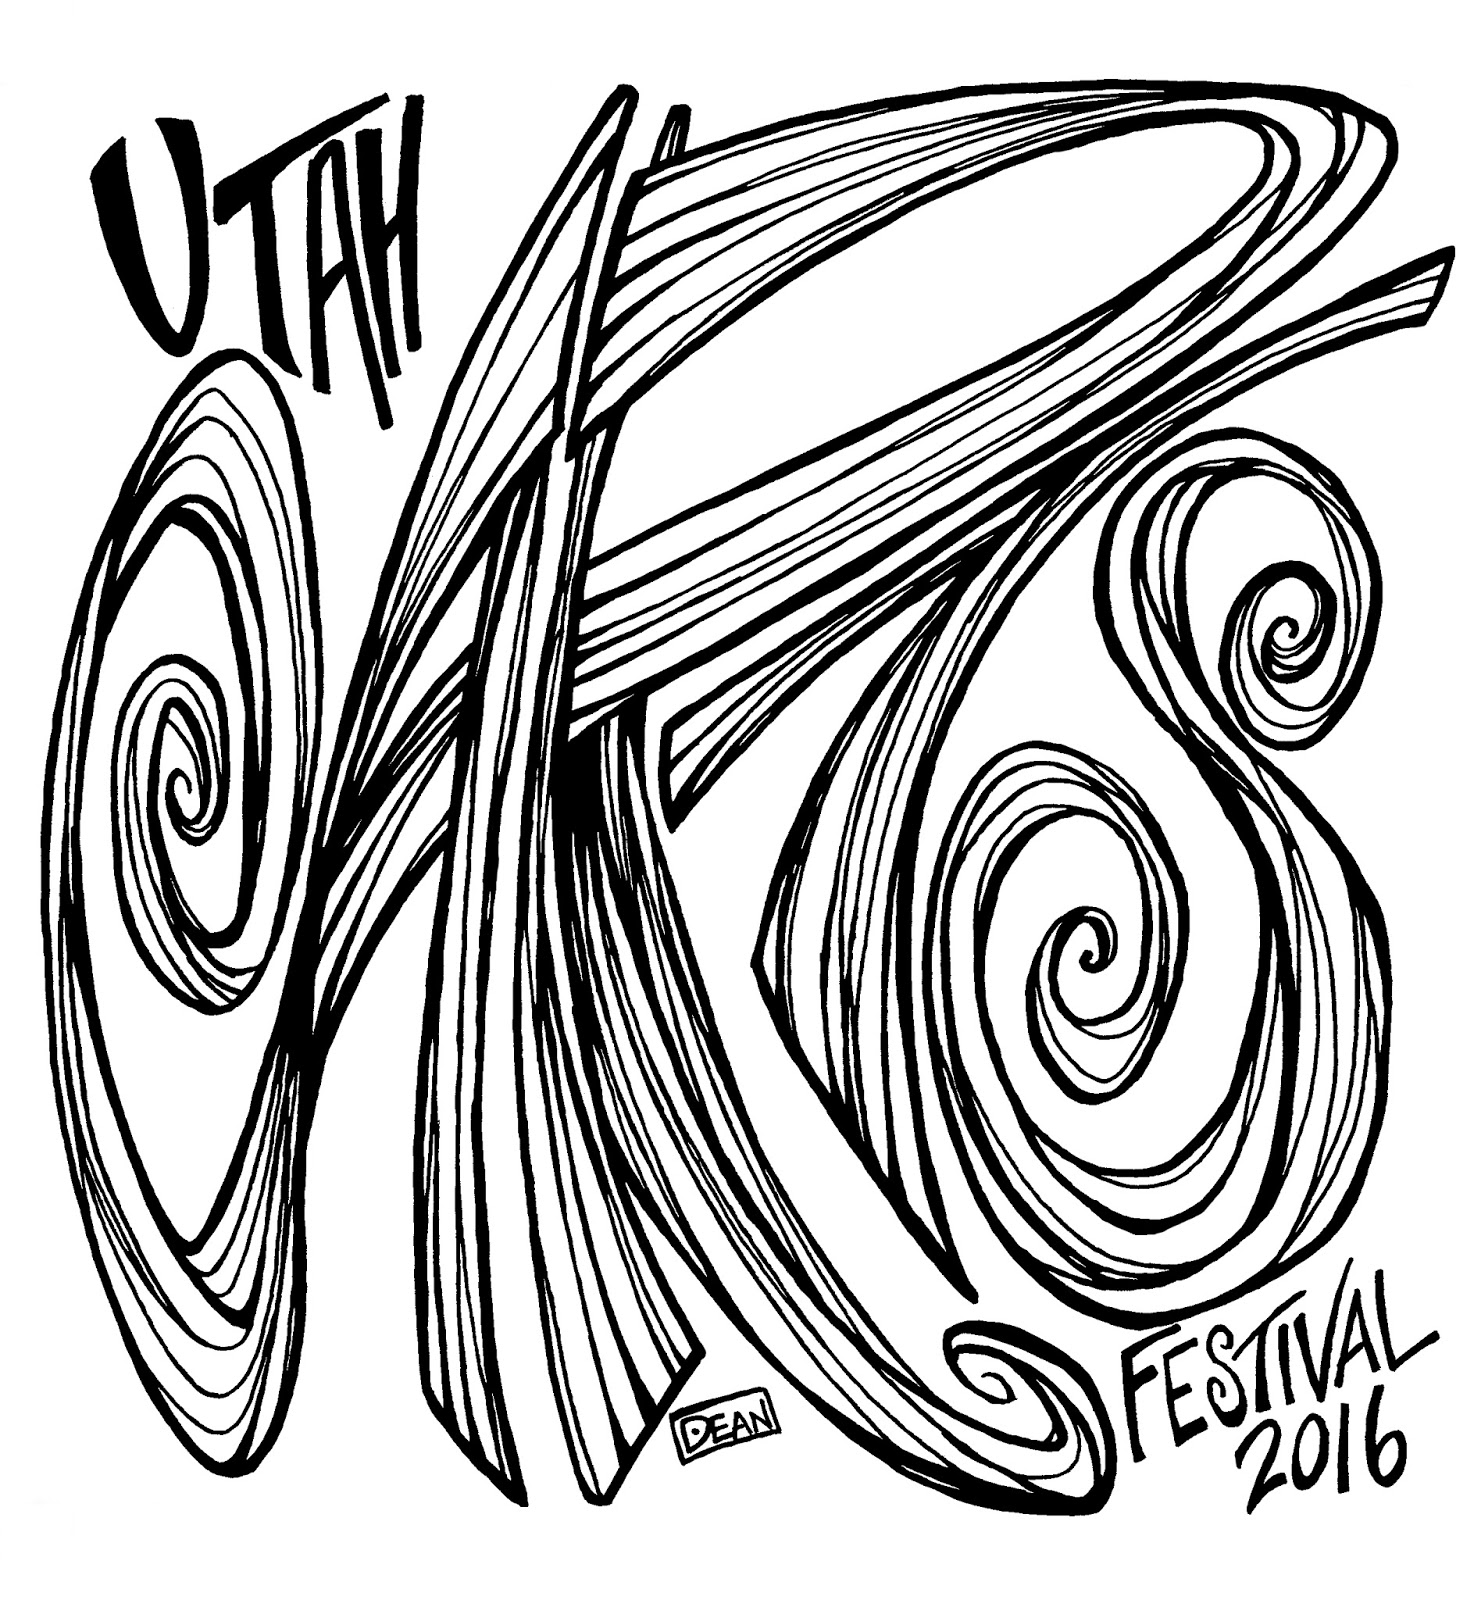 Shirt design utah - I Have Created A Design That I Think Is Fun And Artistic I Have Submitted And I Hope I Win